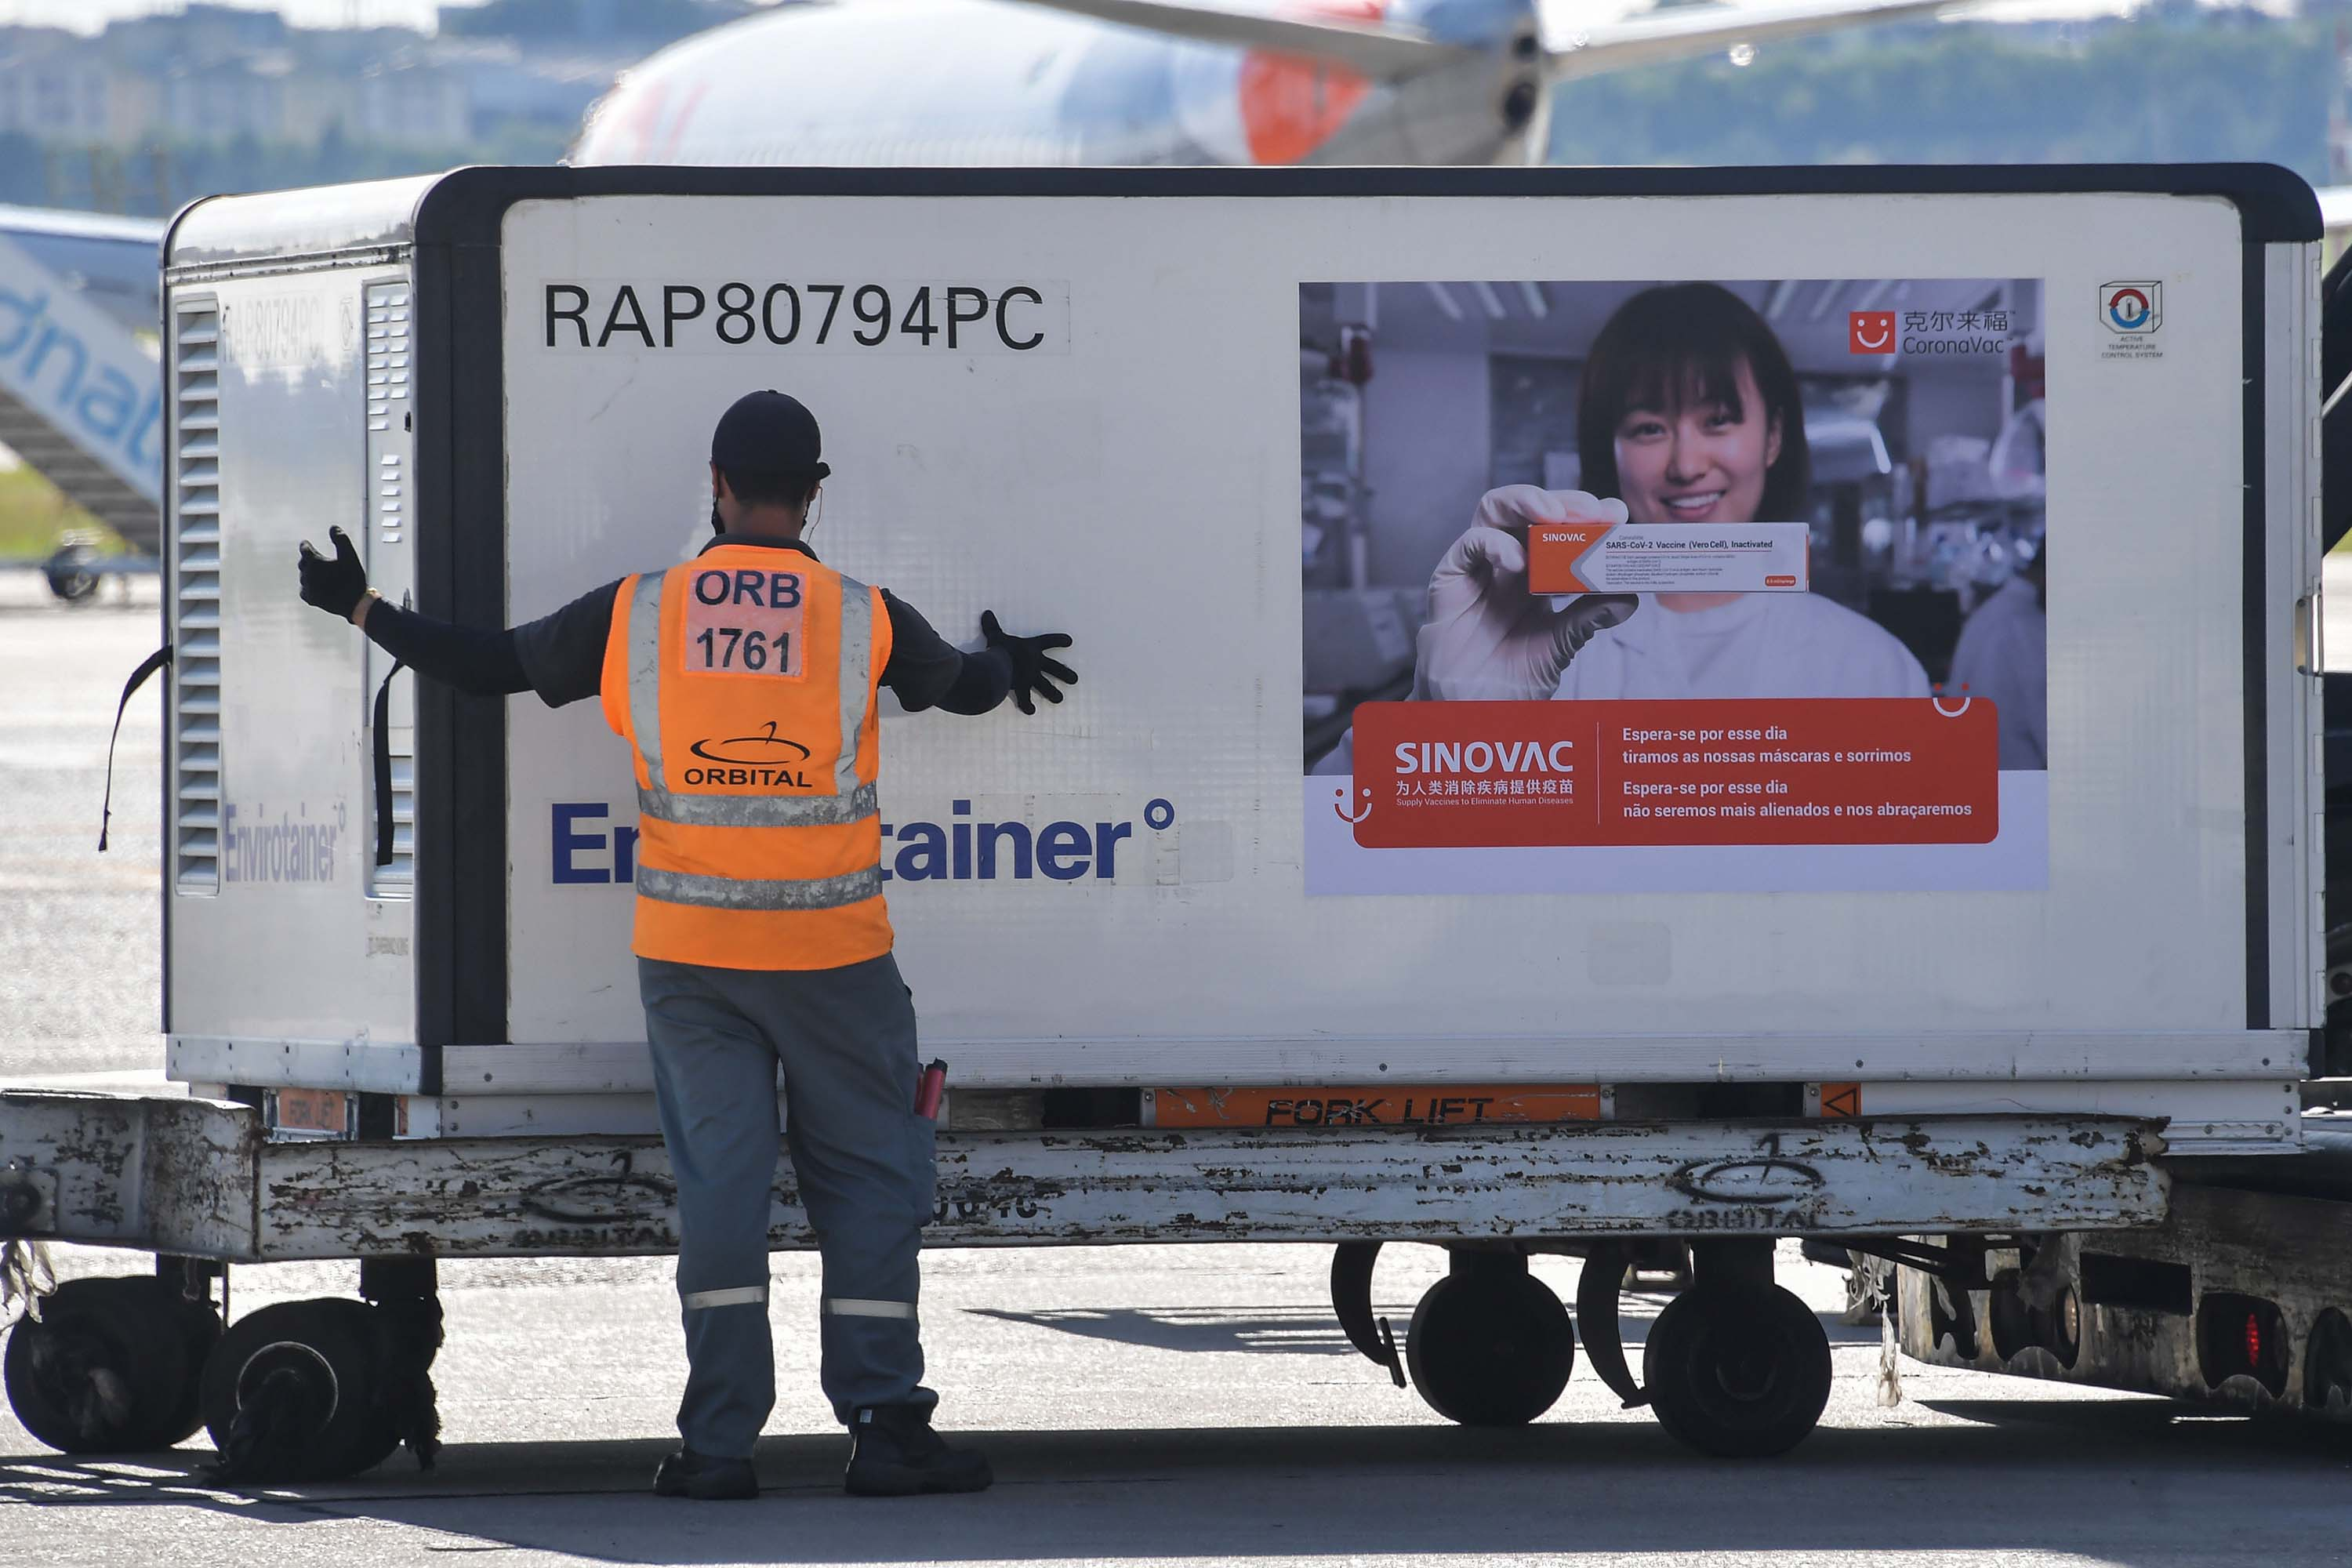 A shipment of the CoronaVac vaccine is unloaded from a cargo plane that arrived from China, at Guarulhos International Airport in Guarulhos, Brazil, on December 18.